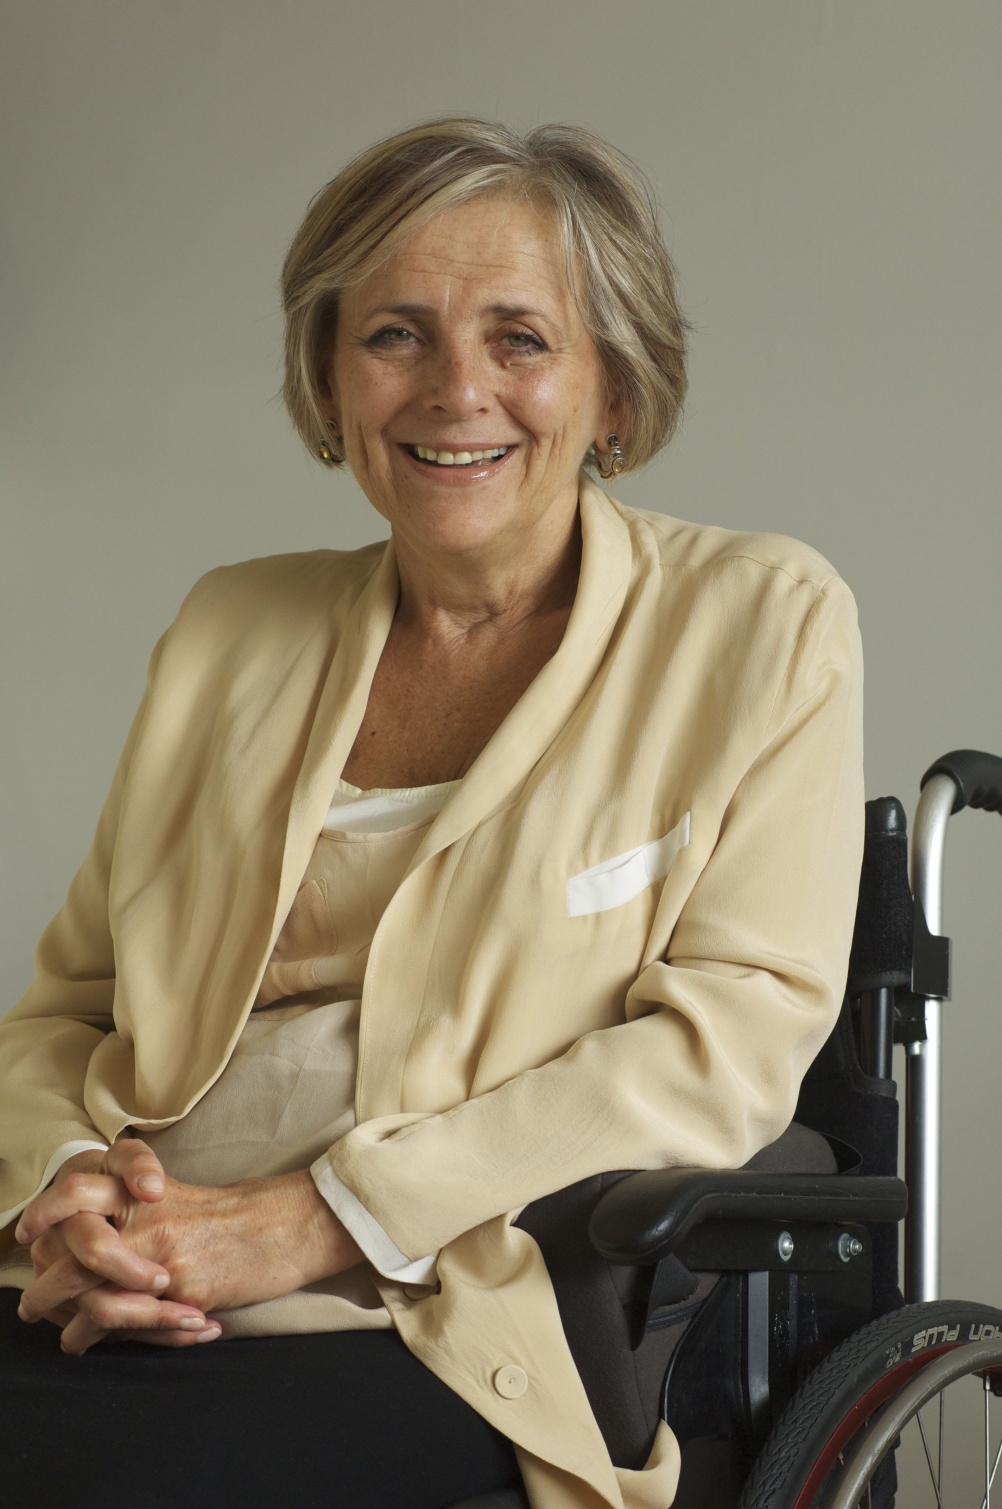 Blue Badge Style founder Fiona Jarvis disability wheelchairs